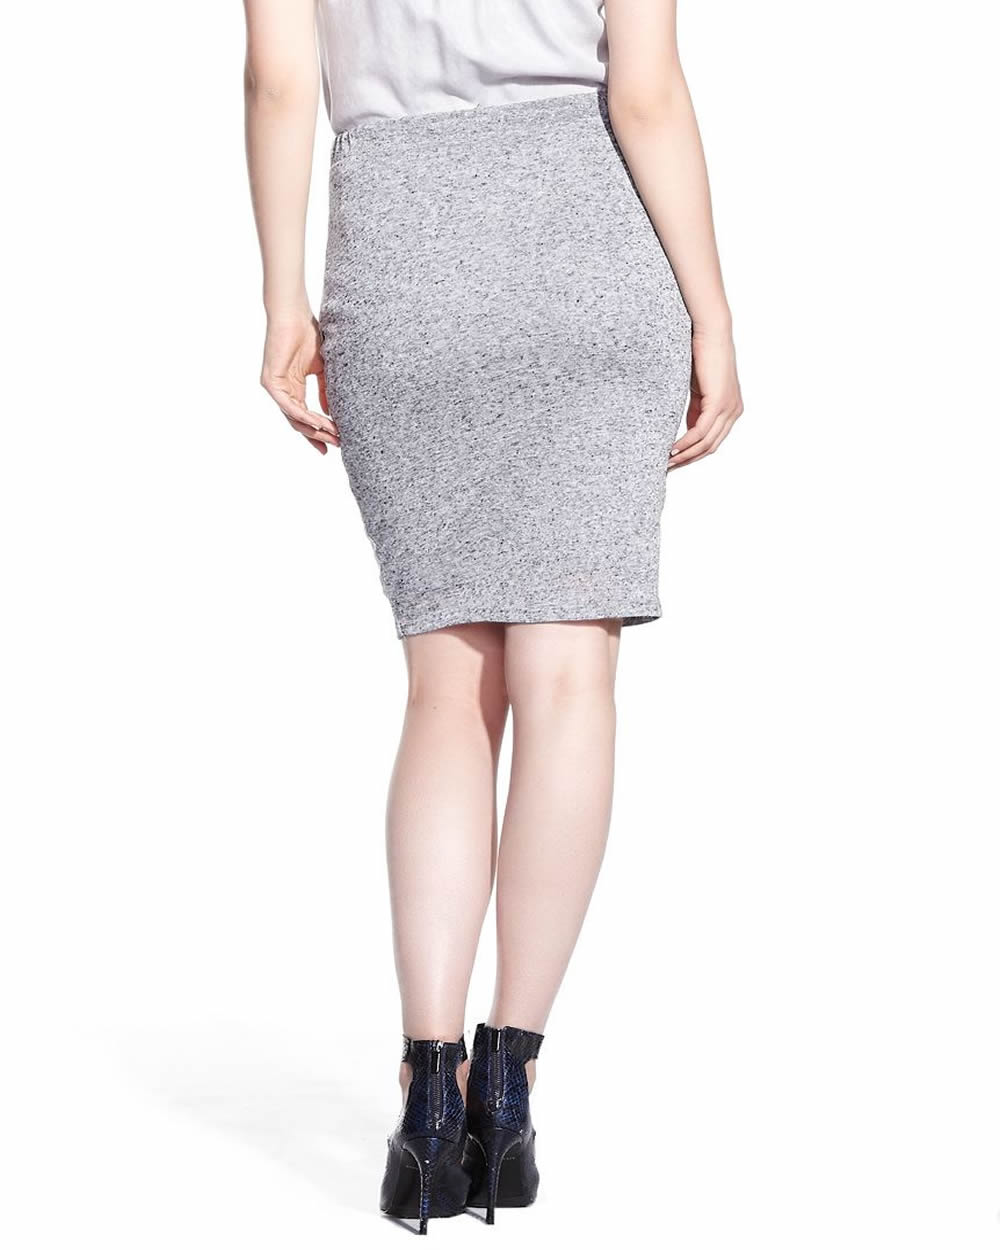 Our skirts are fun, feminine and bring serious personality to any outfit. A day at work might call for a wrap or pencil skirt, while weekend adventures welcome the mini skirt. Whether you're looking for an above-the-knee silhouette, or longer lengths like a midi or maxi, we've got you covered.